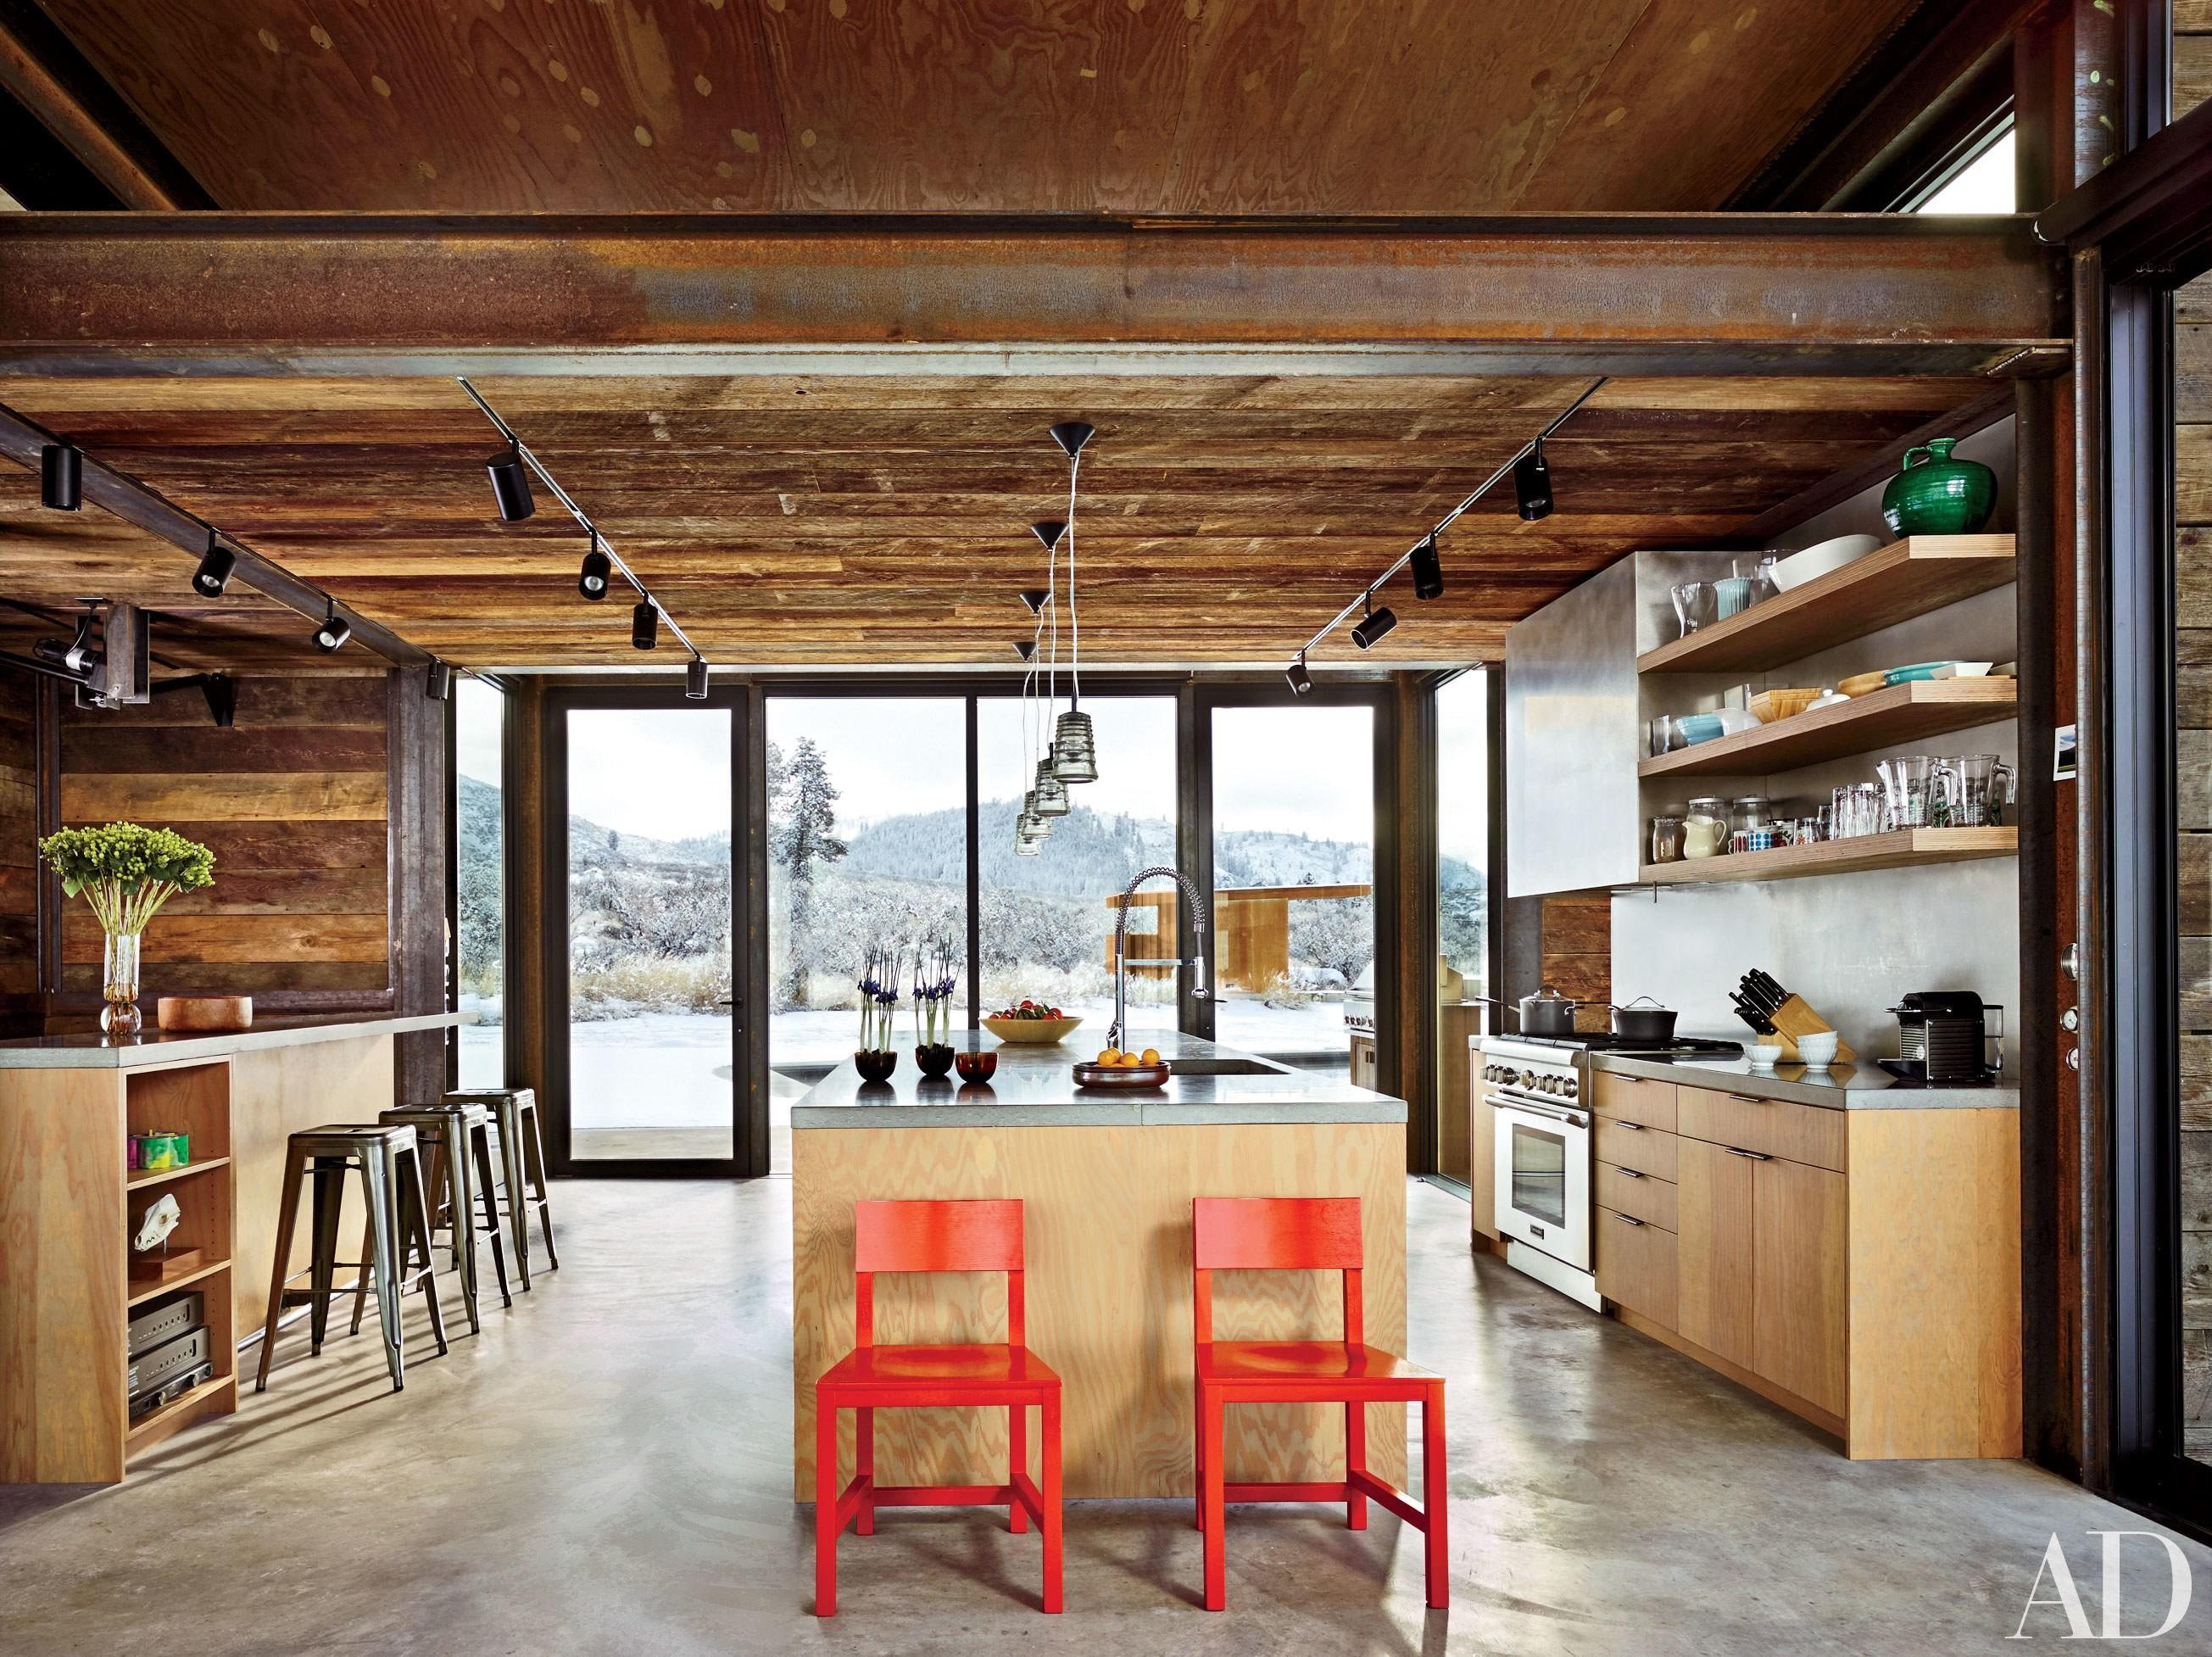 Rustic Reclaimed Wood Interior Photos Architectural Digest